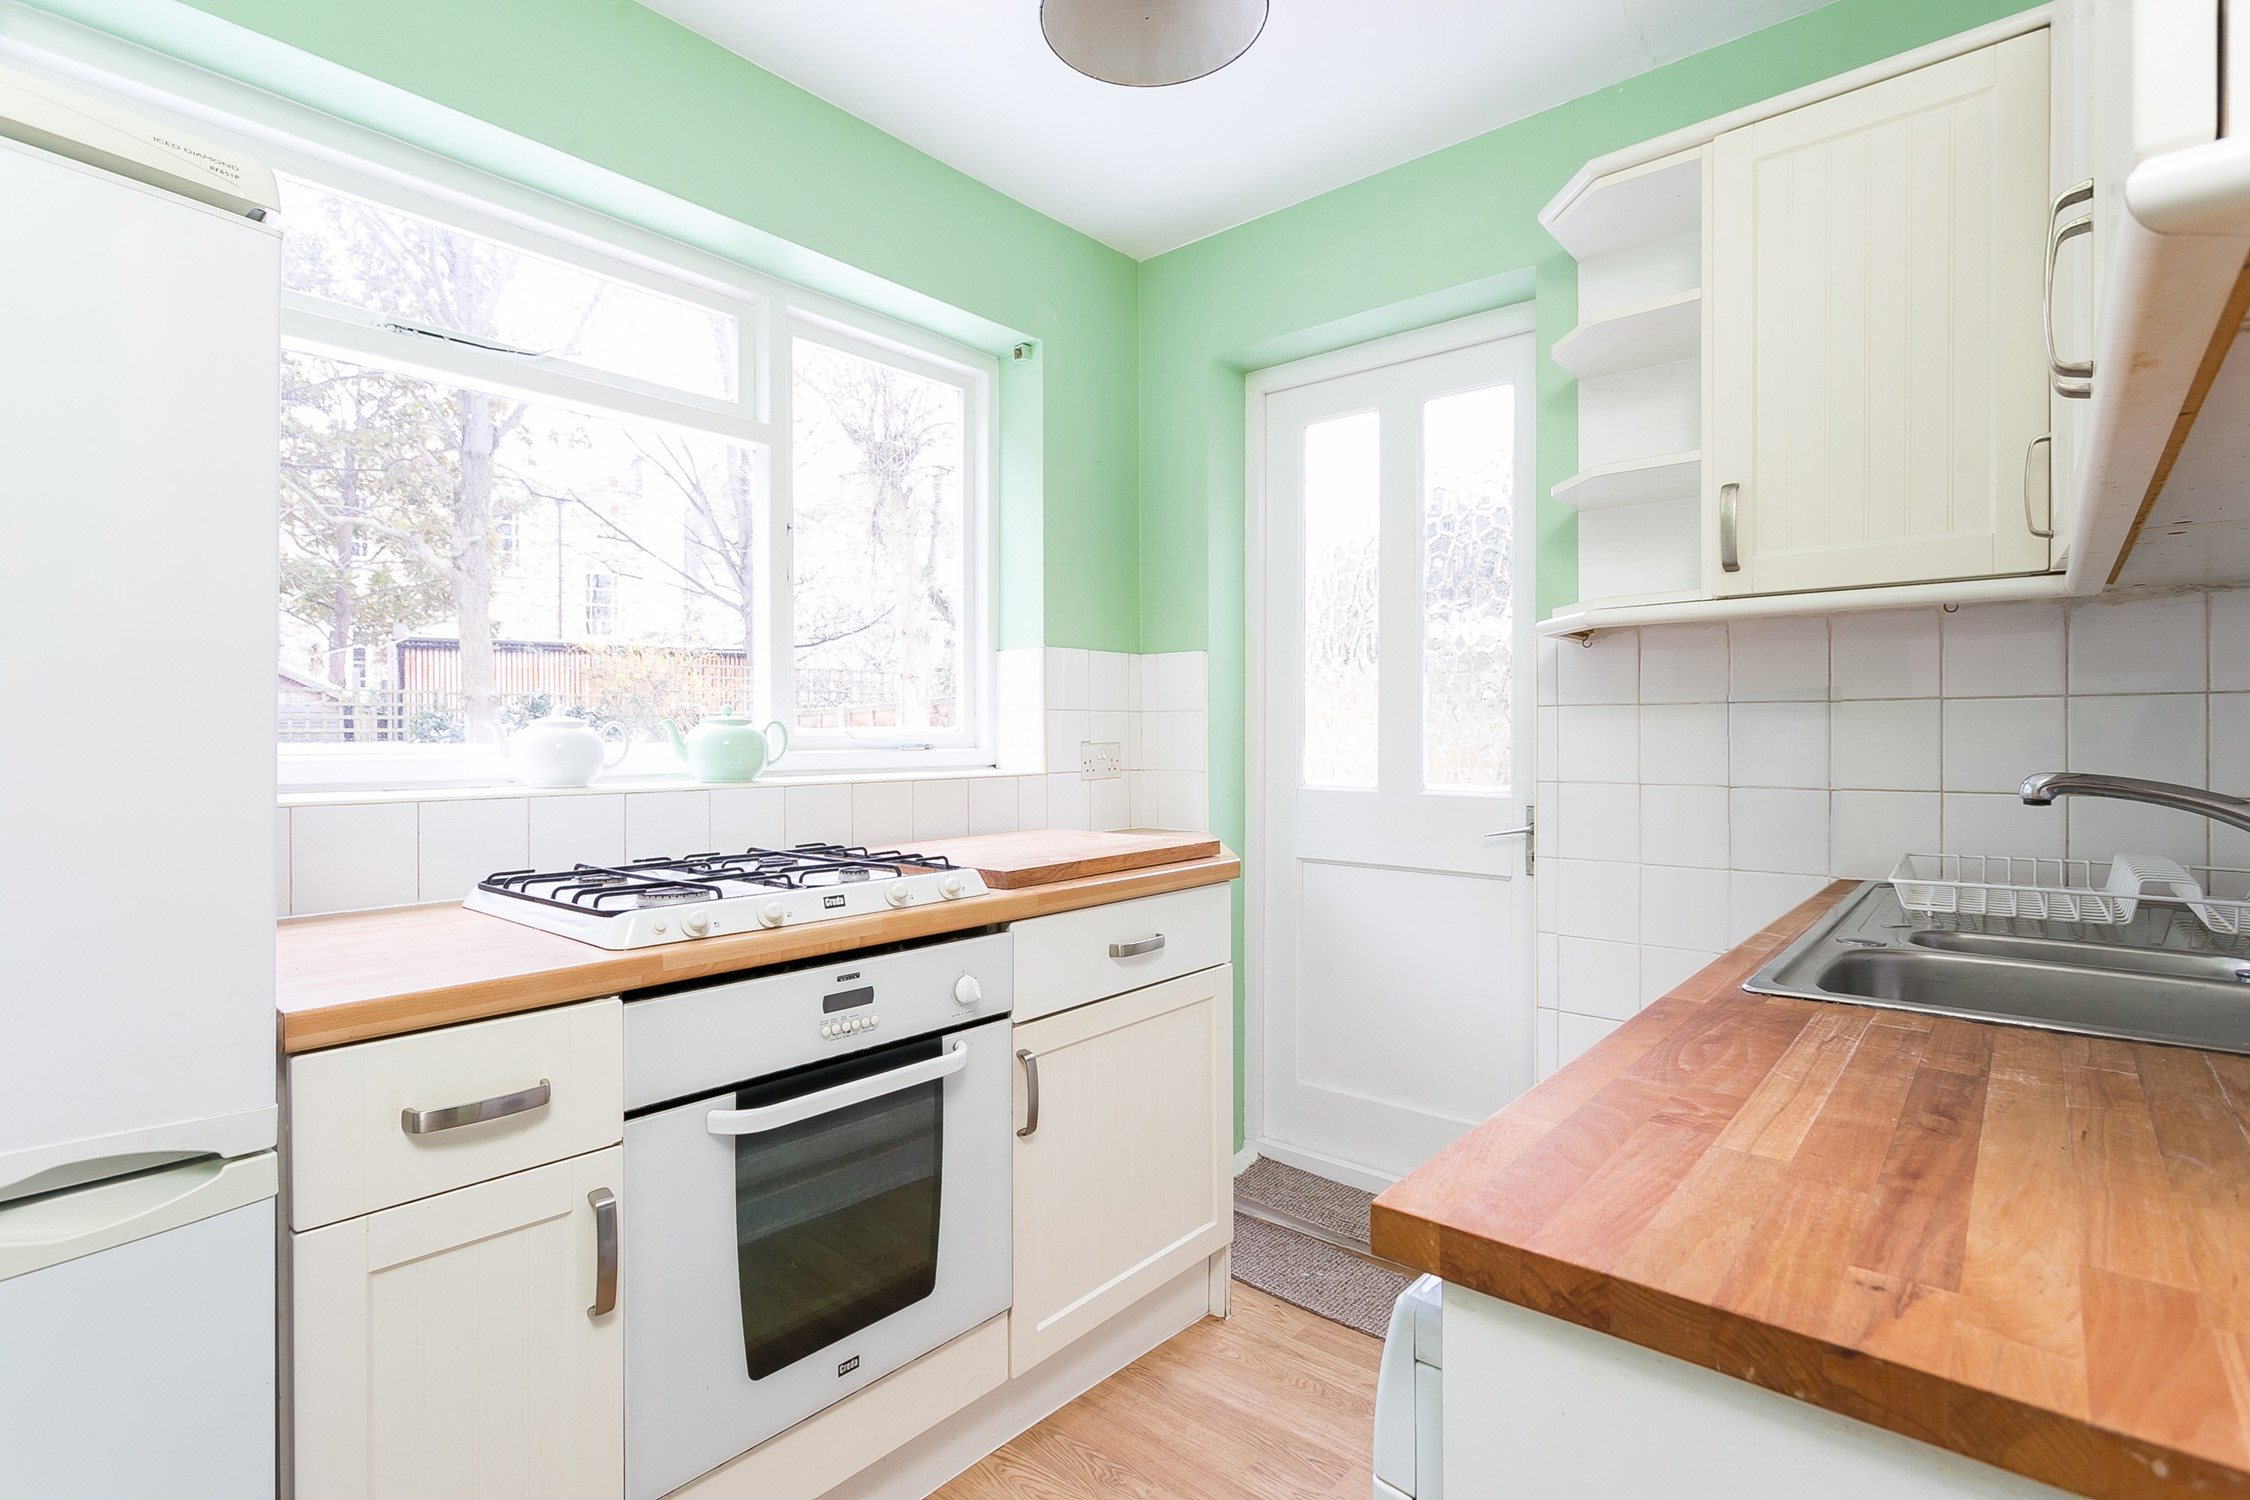 Portico - 3 Bedroom House for sale in Hackney: Shrubland Road, E8 ...